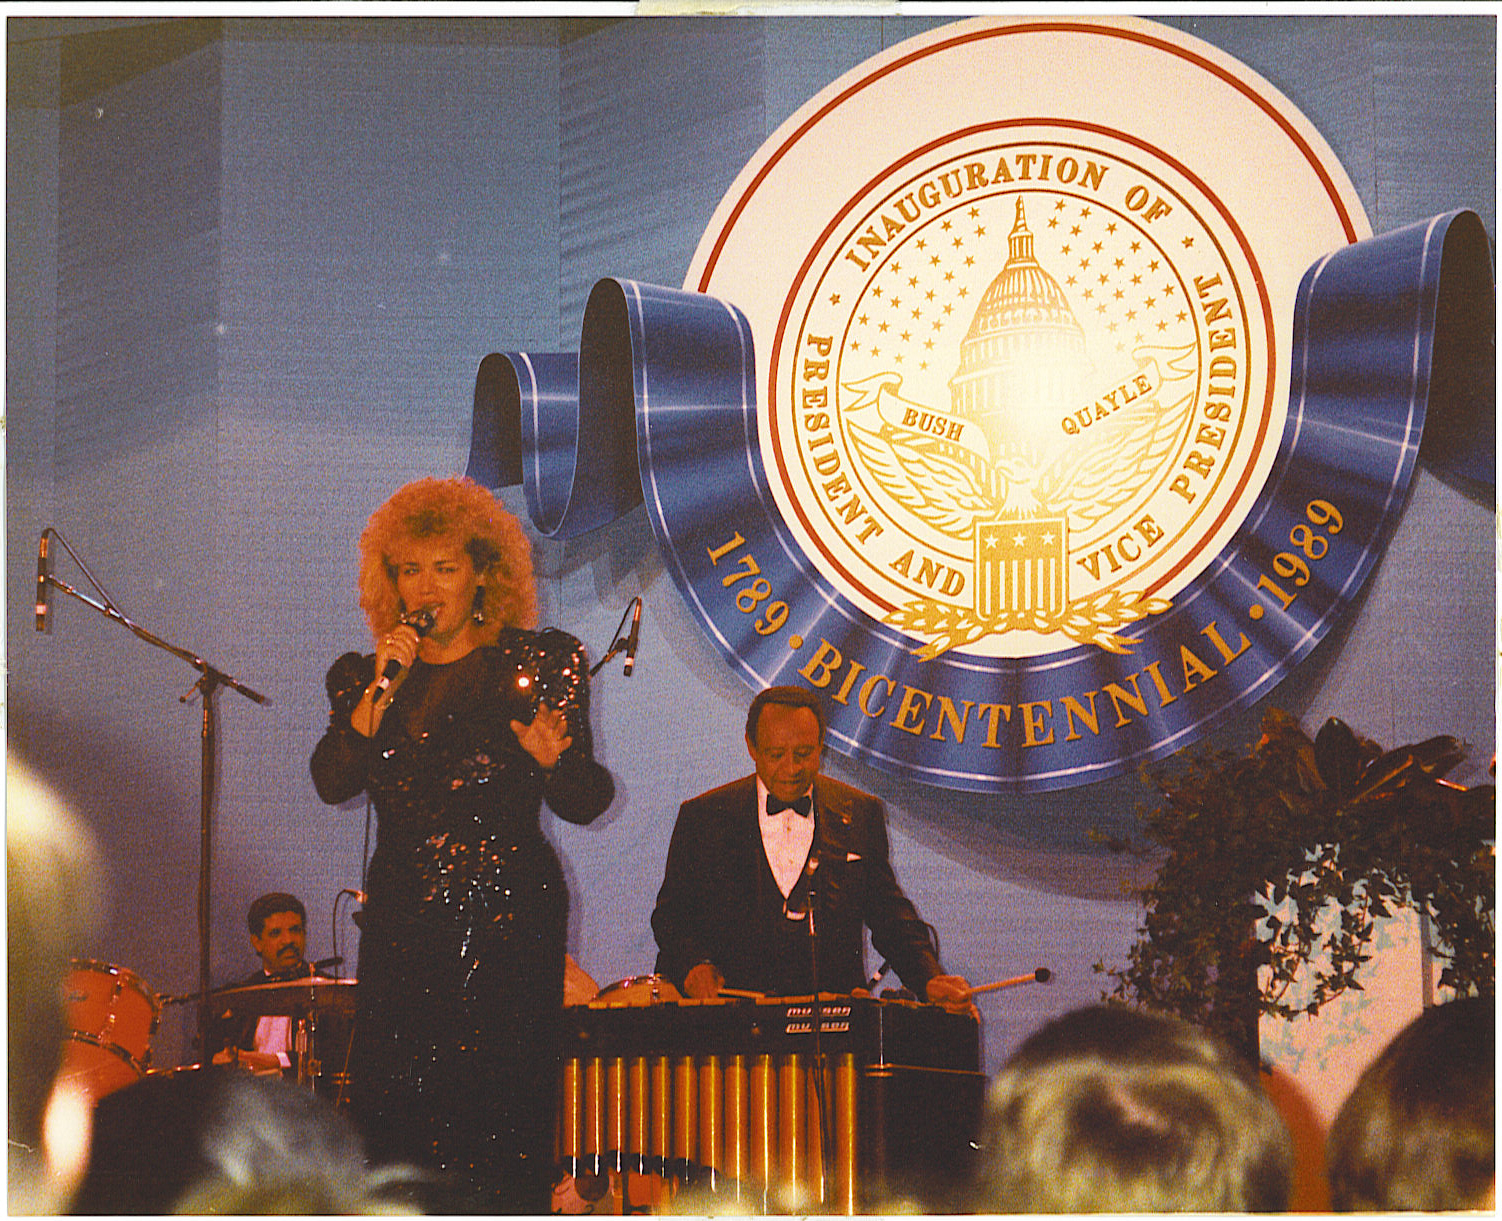 During my performance with Lionel Hampton at the Presidential Inauguration